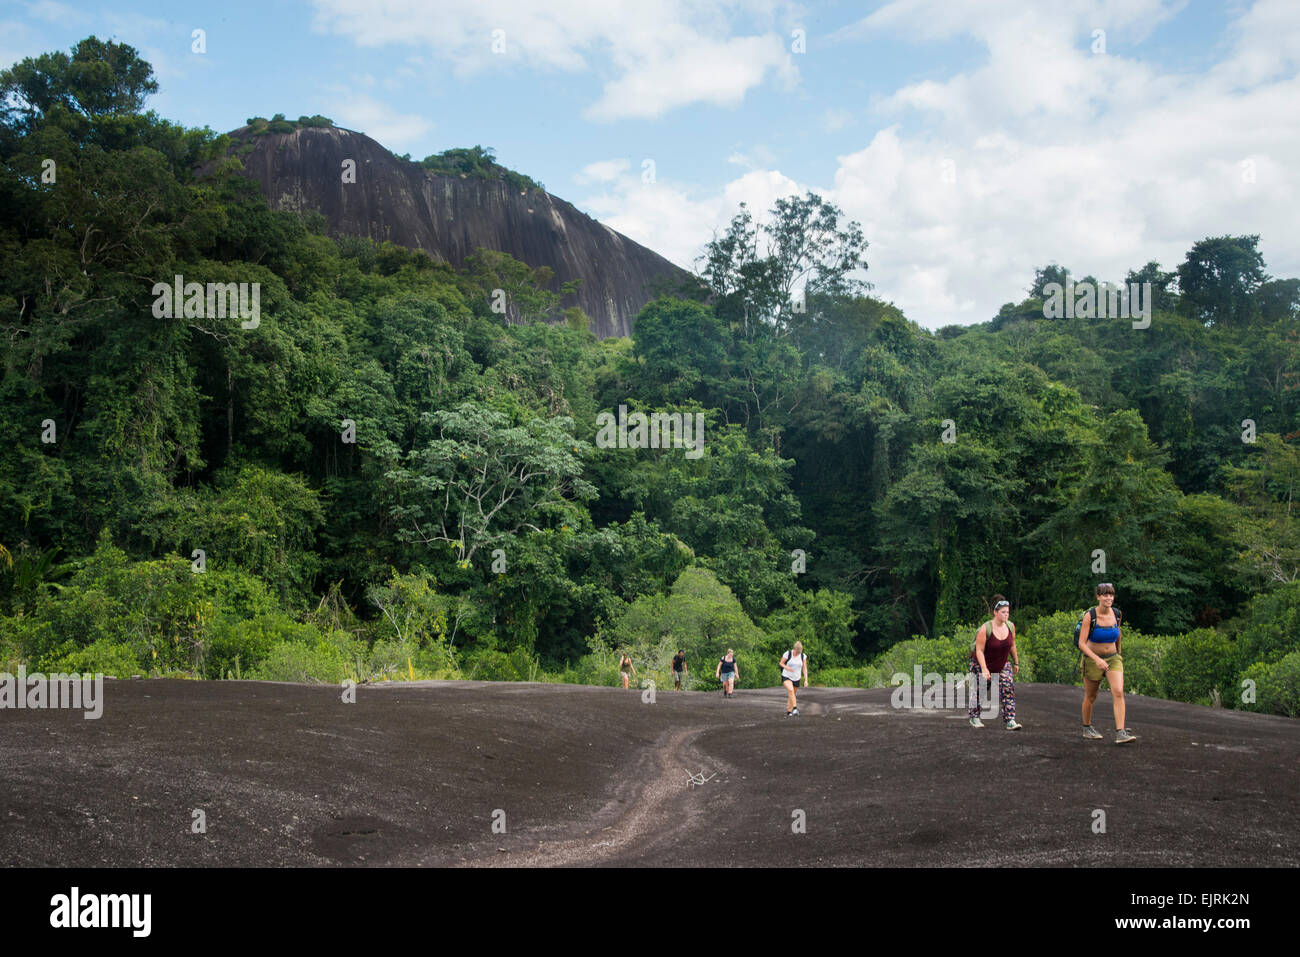 Hikers on Voltzberg Mountain, Central Suriname Nature Reserve, Suriname - Stock Image